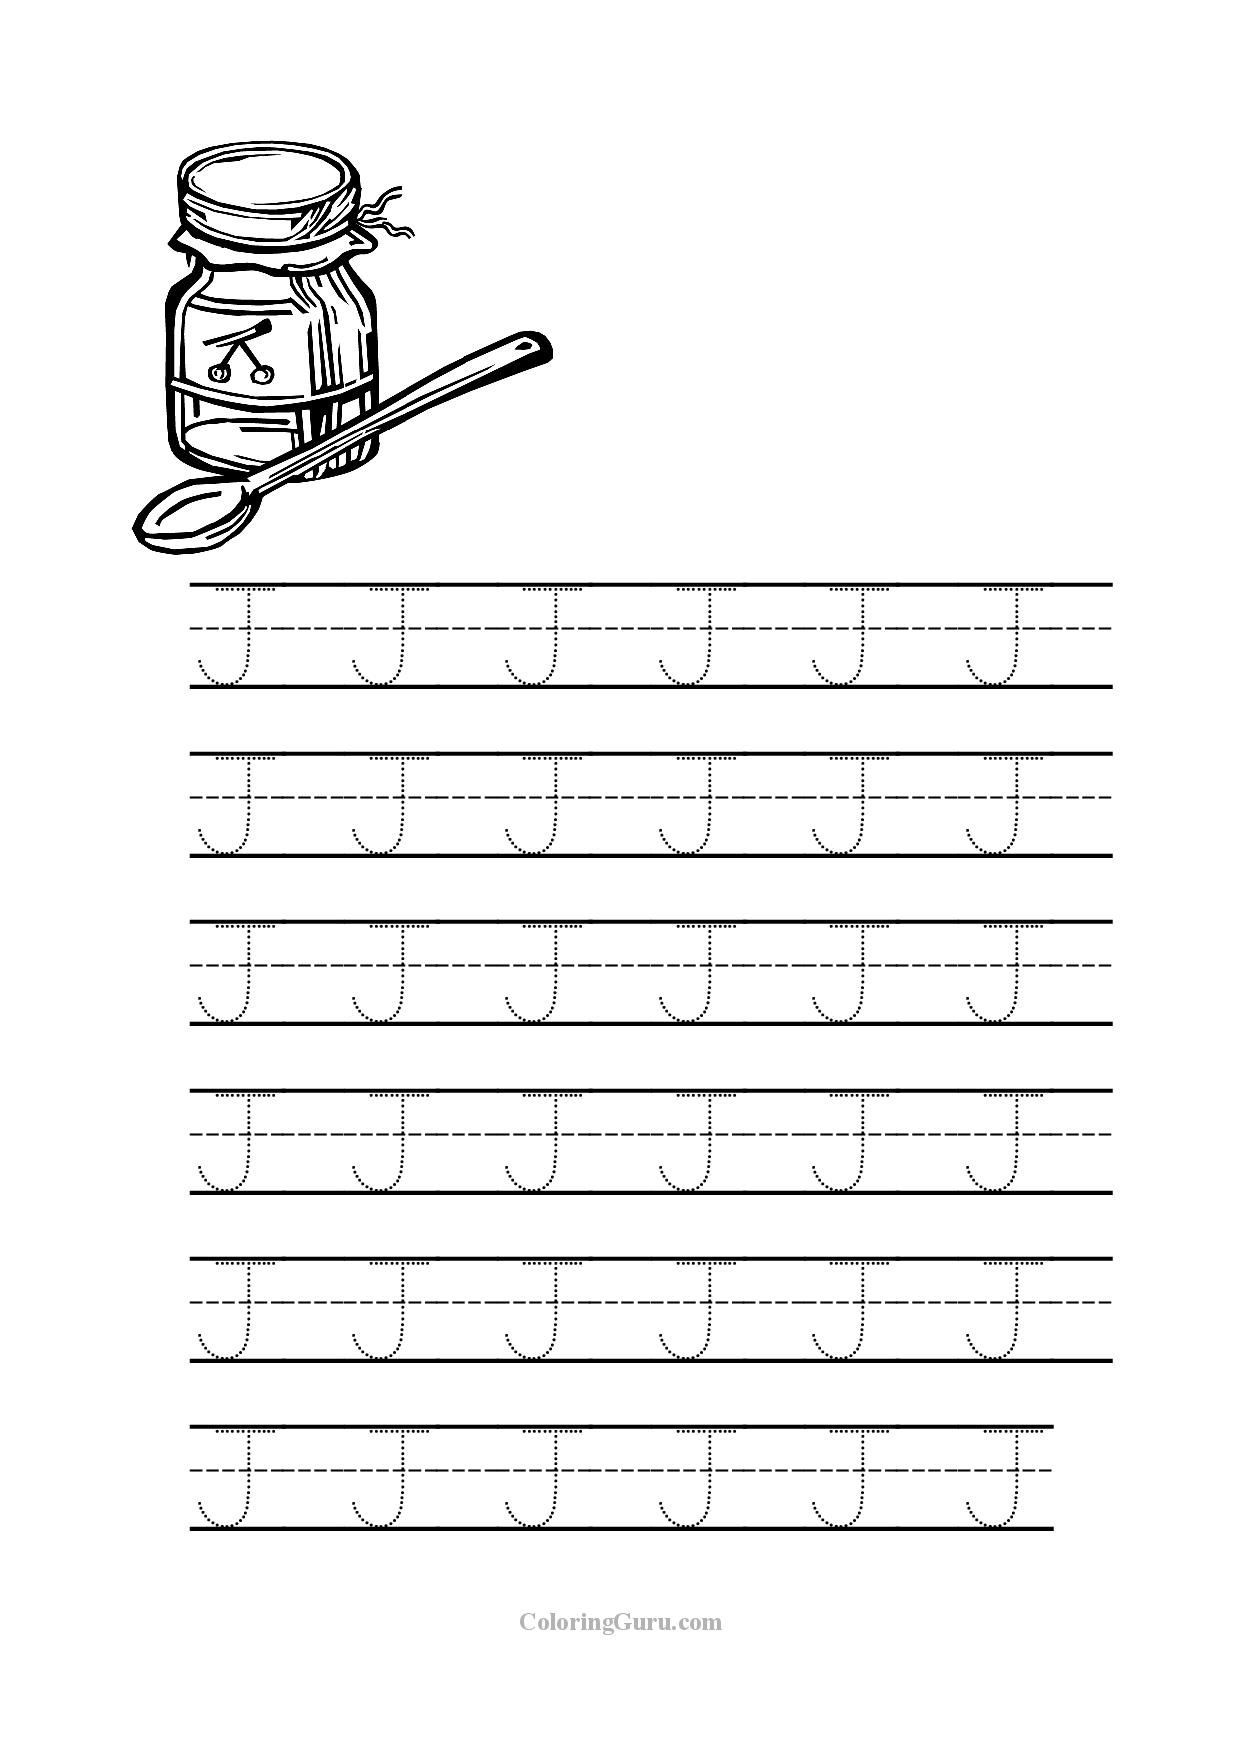 Letter J Worksheets for Preschool Free Printable Tracing Letter J Worksheets for Preschool